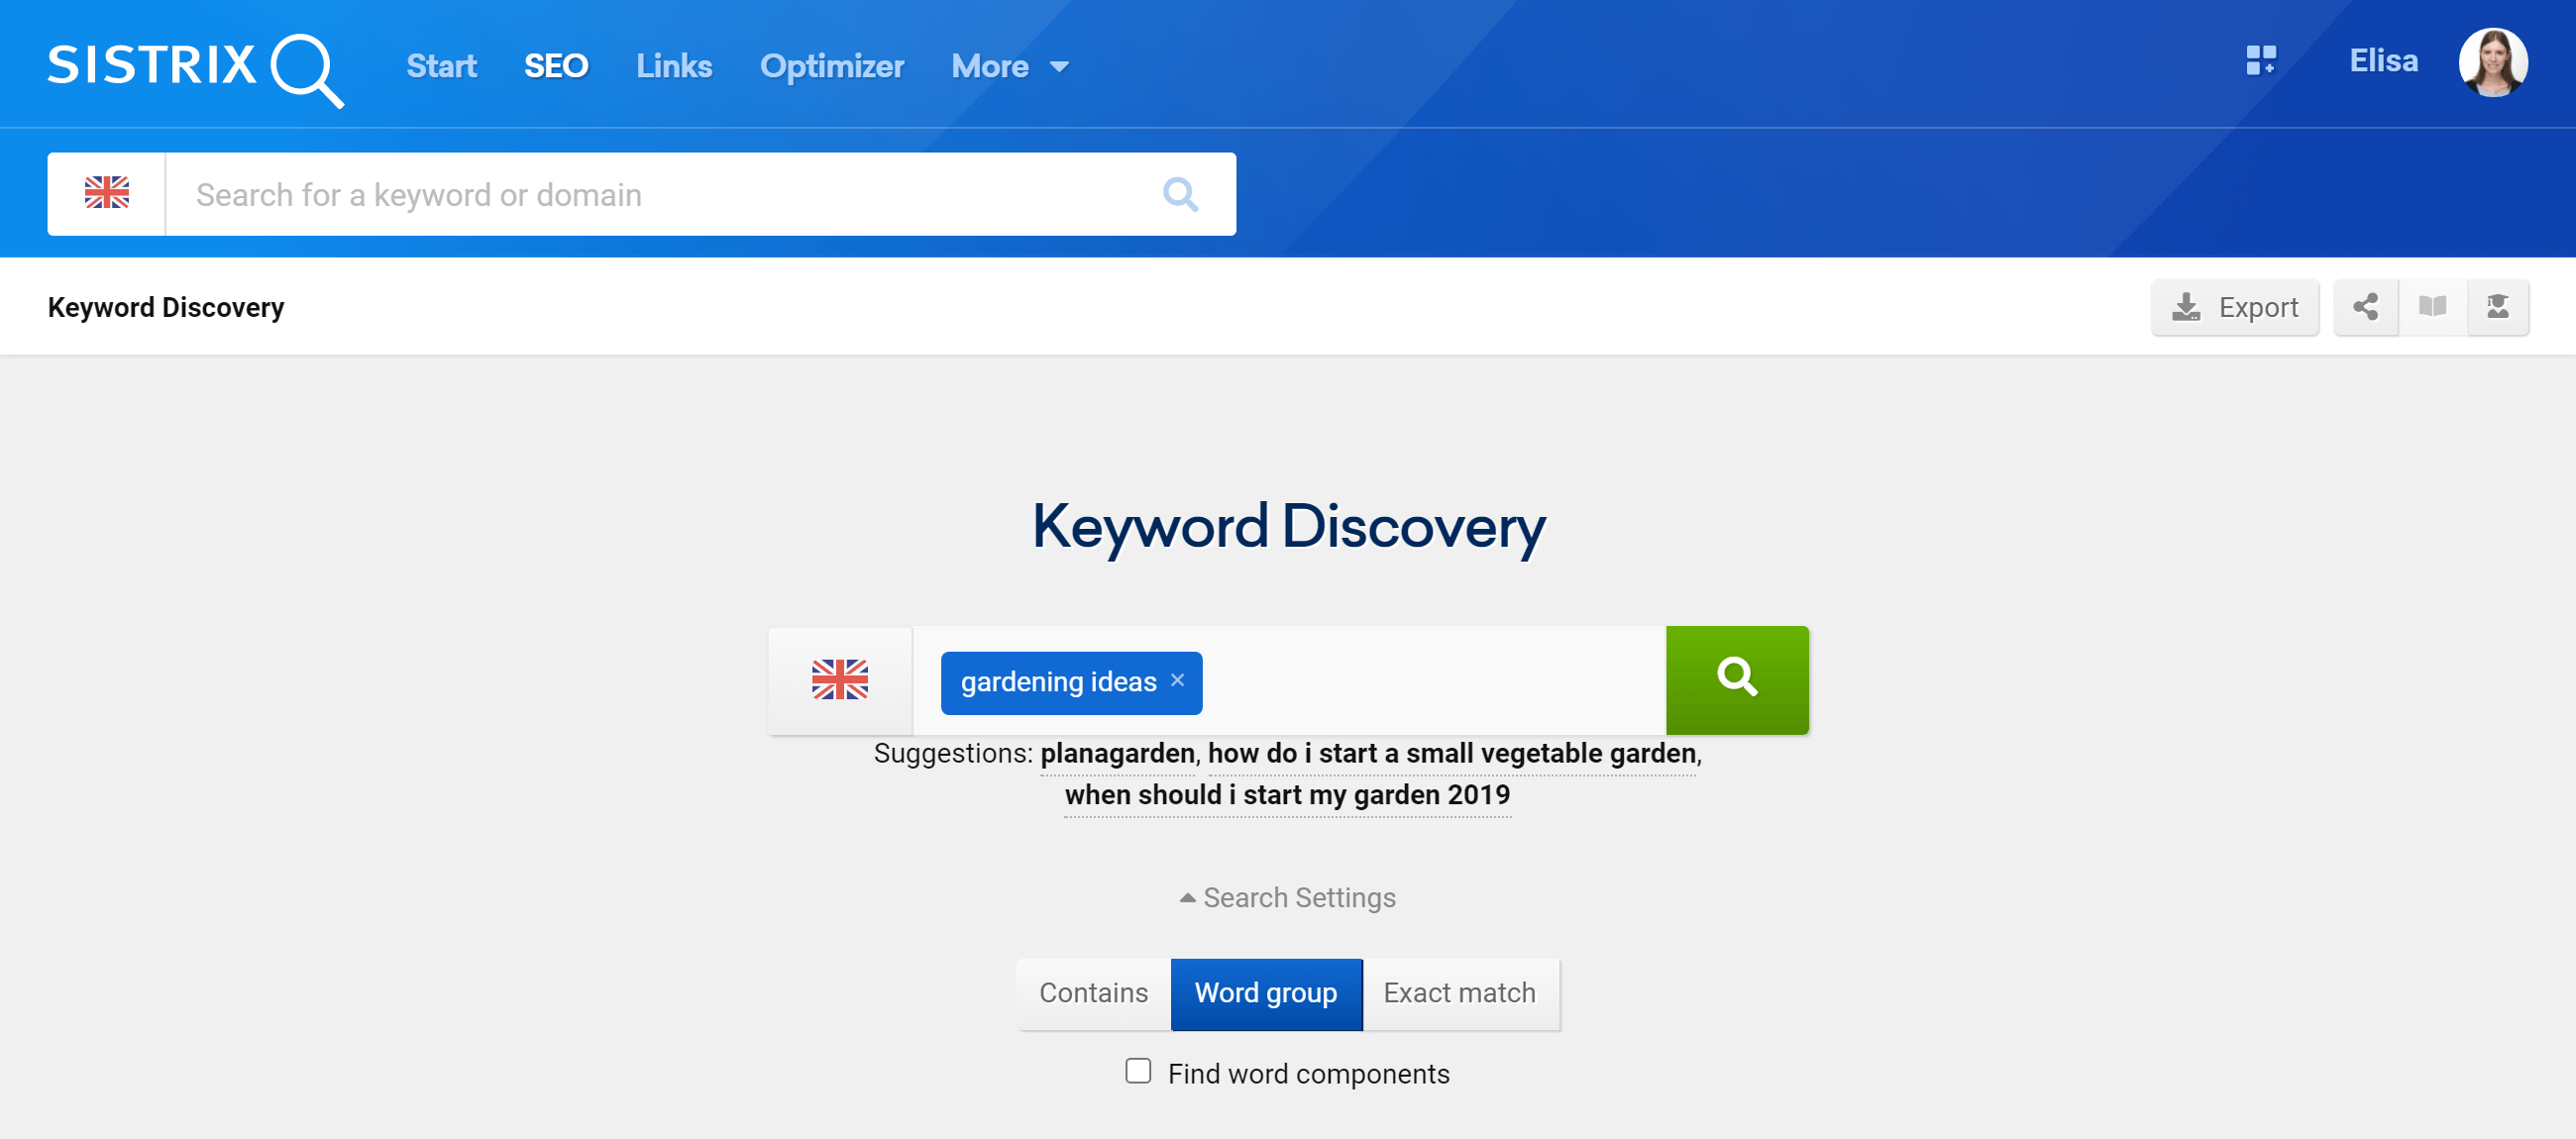 The Keyword Discovery tool in the SEO module